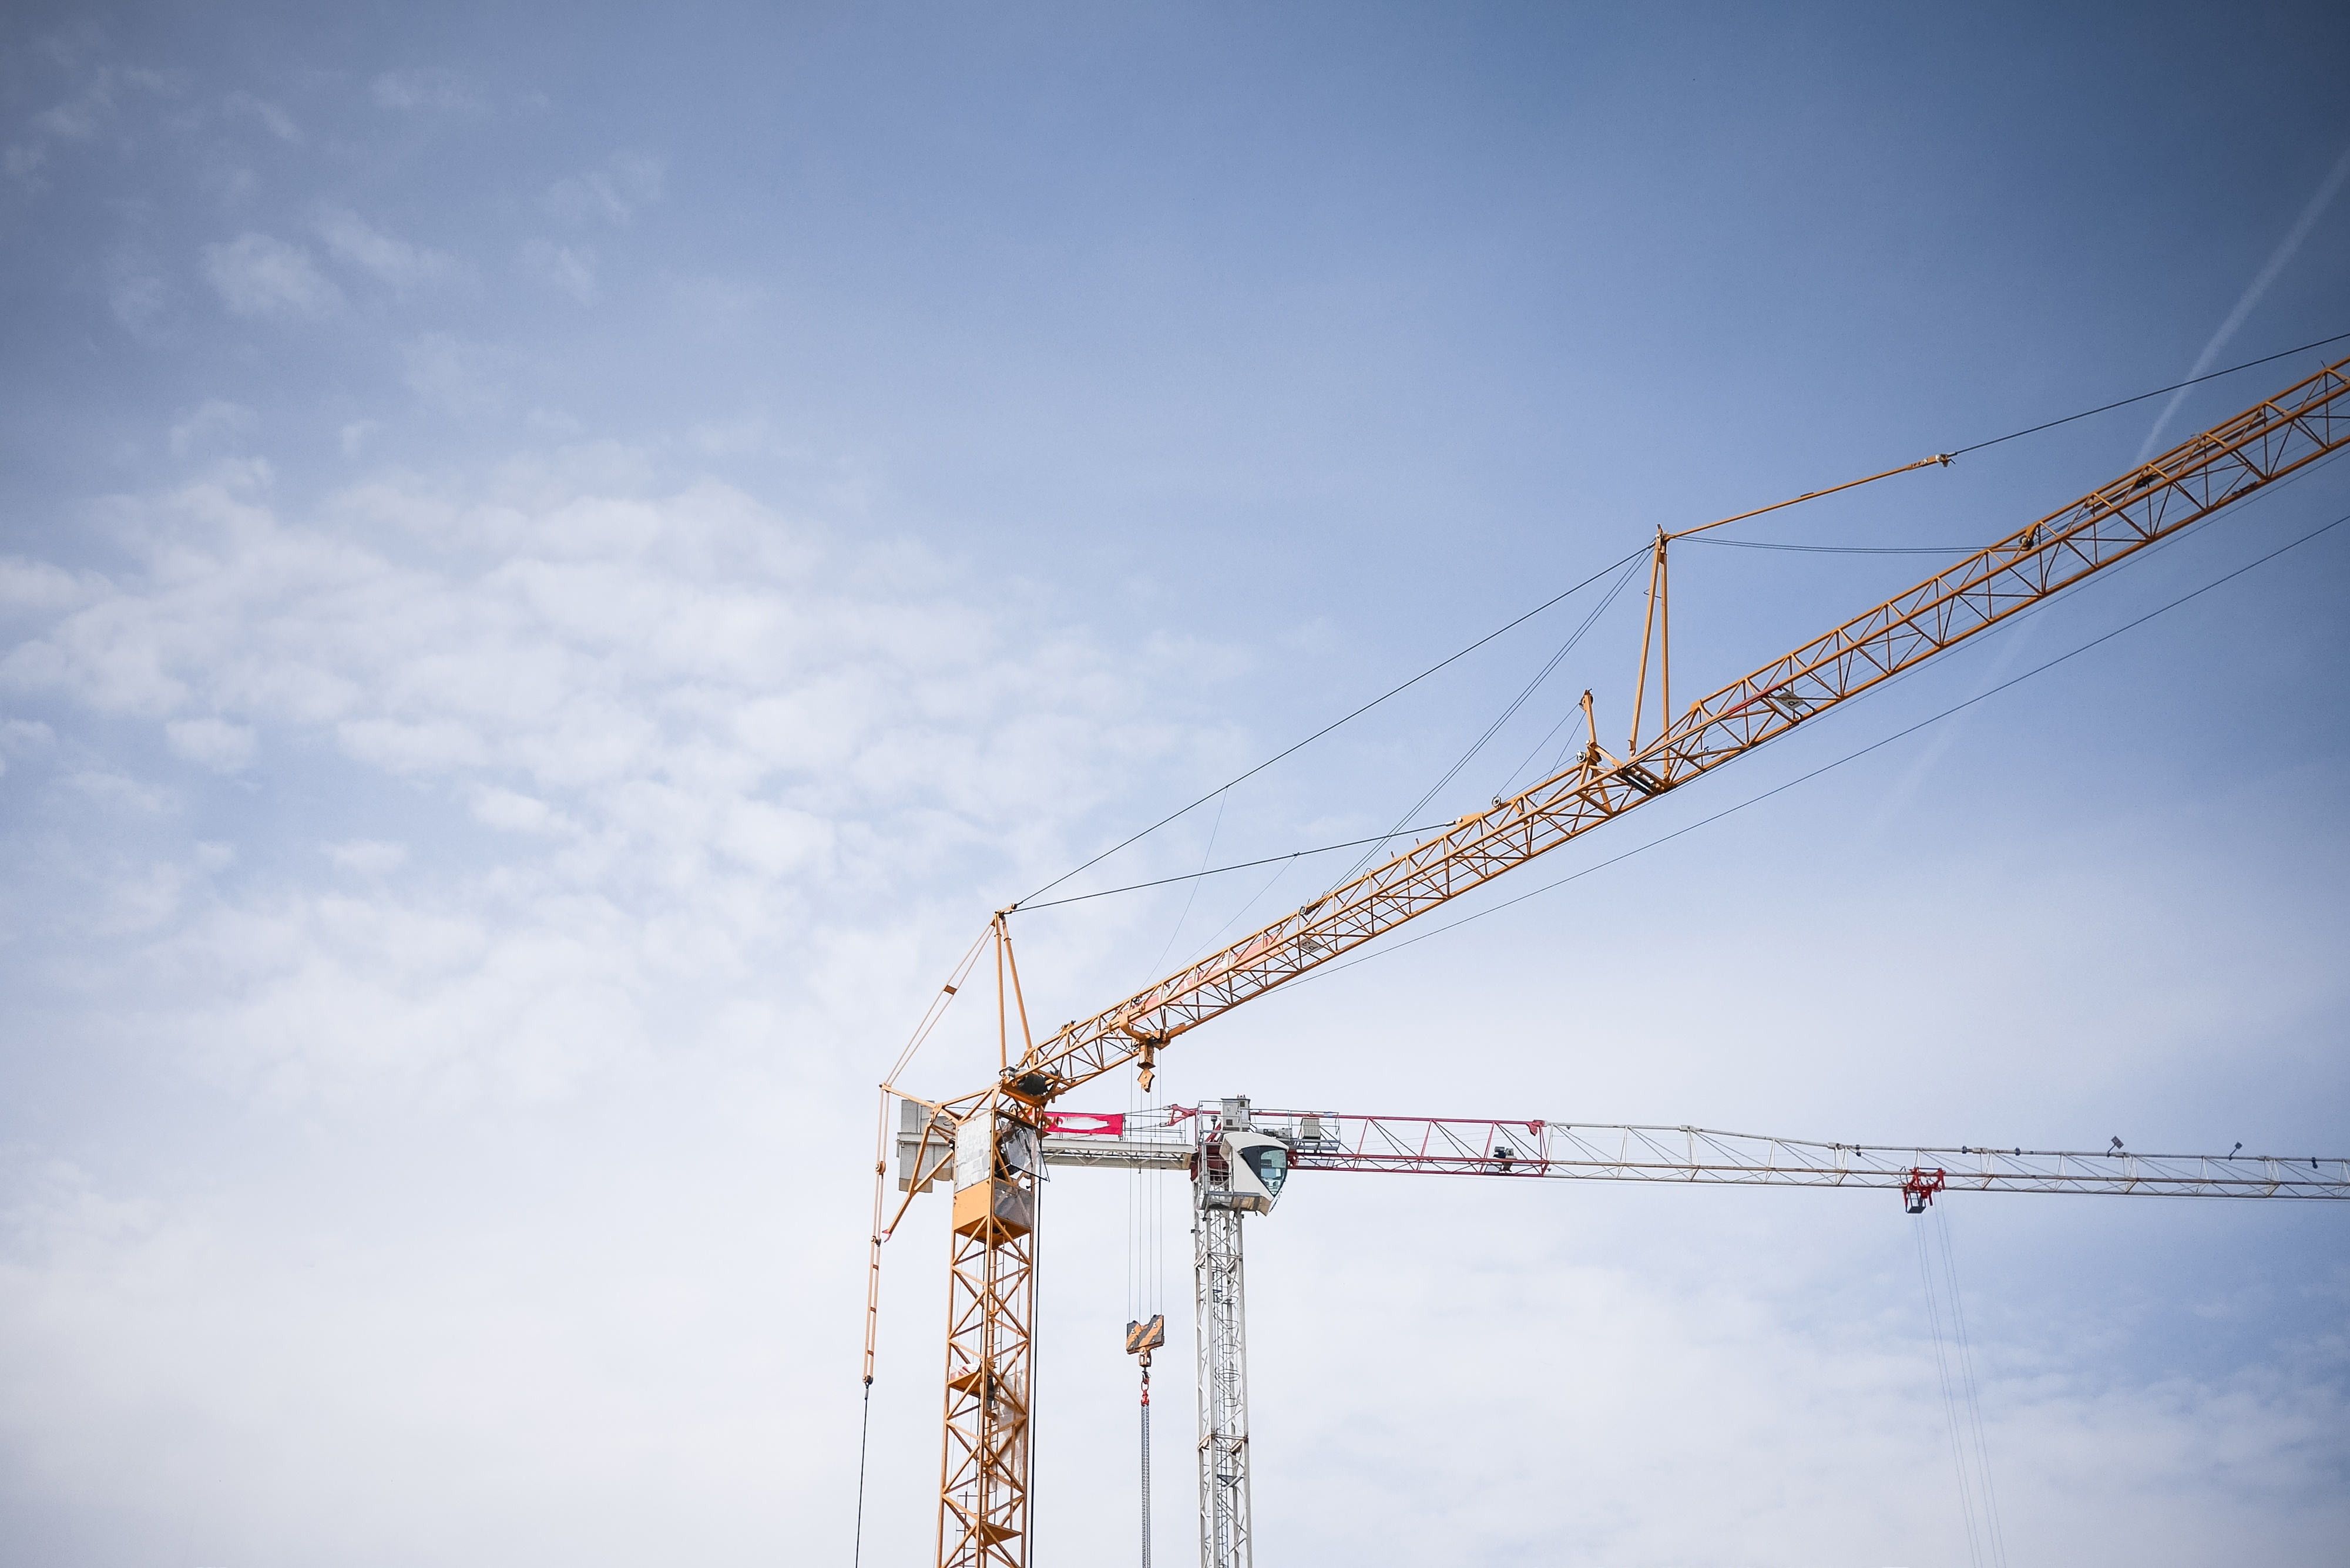 big-lifting-cranes-at-construction-site-picjumbo-com